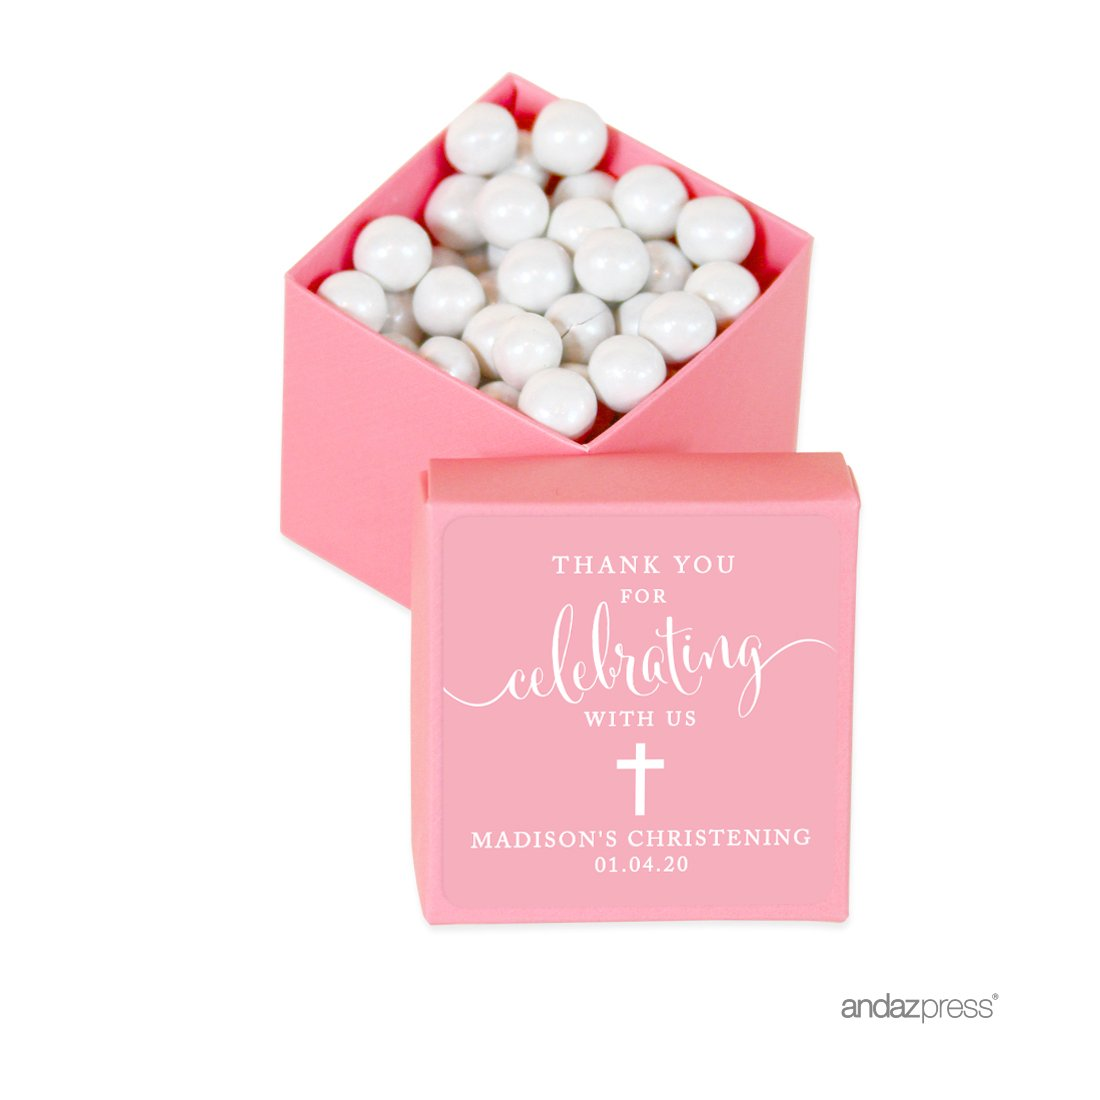 Andaz Press Personalized Mini Square Party Favor Box DIY Kit, Baptism, Thank You for Celebrating With Us, Pink, 20-Pack, For Religious, Christening Party Favors, Decorations, Custom Name